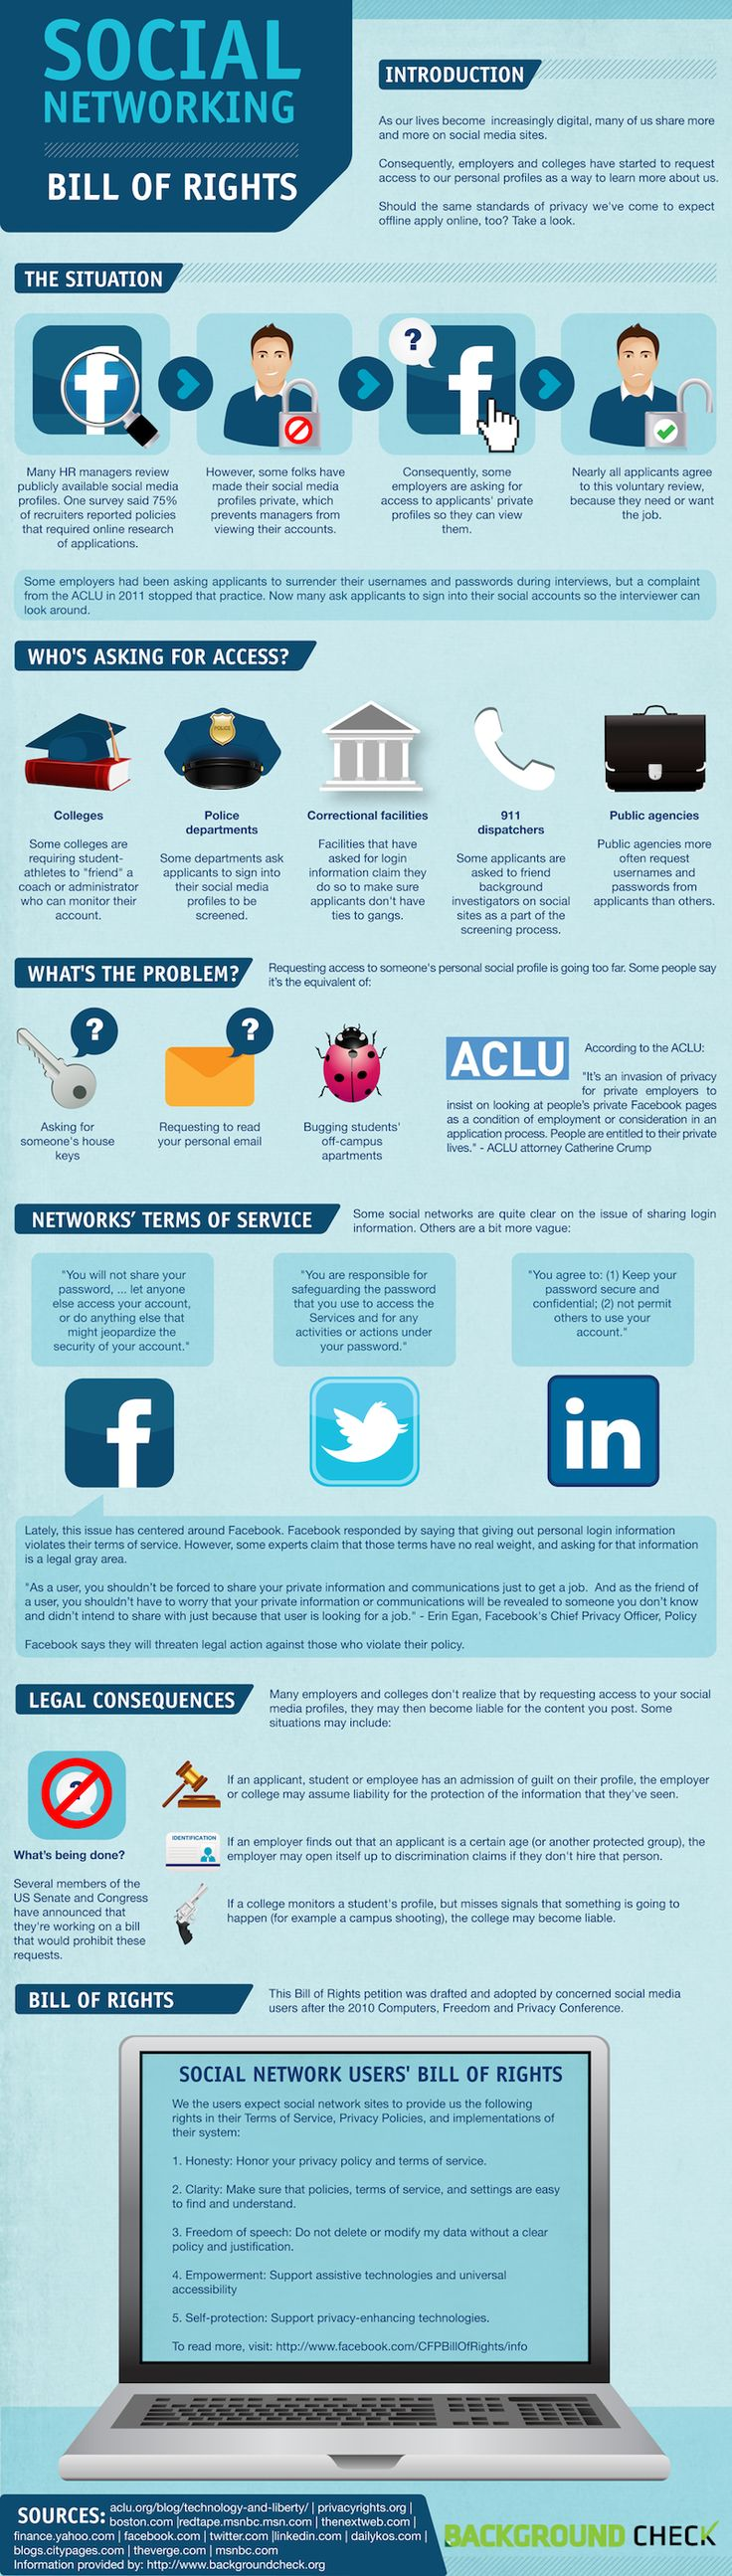 Social Networking Bill of Rights    A US based infographic on employers requesting access to personal profiles of social media accounts. Not aware of this happening in the UK - yet?    Posted 5 April 2012 - res. 800 x 2,816